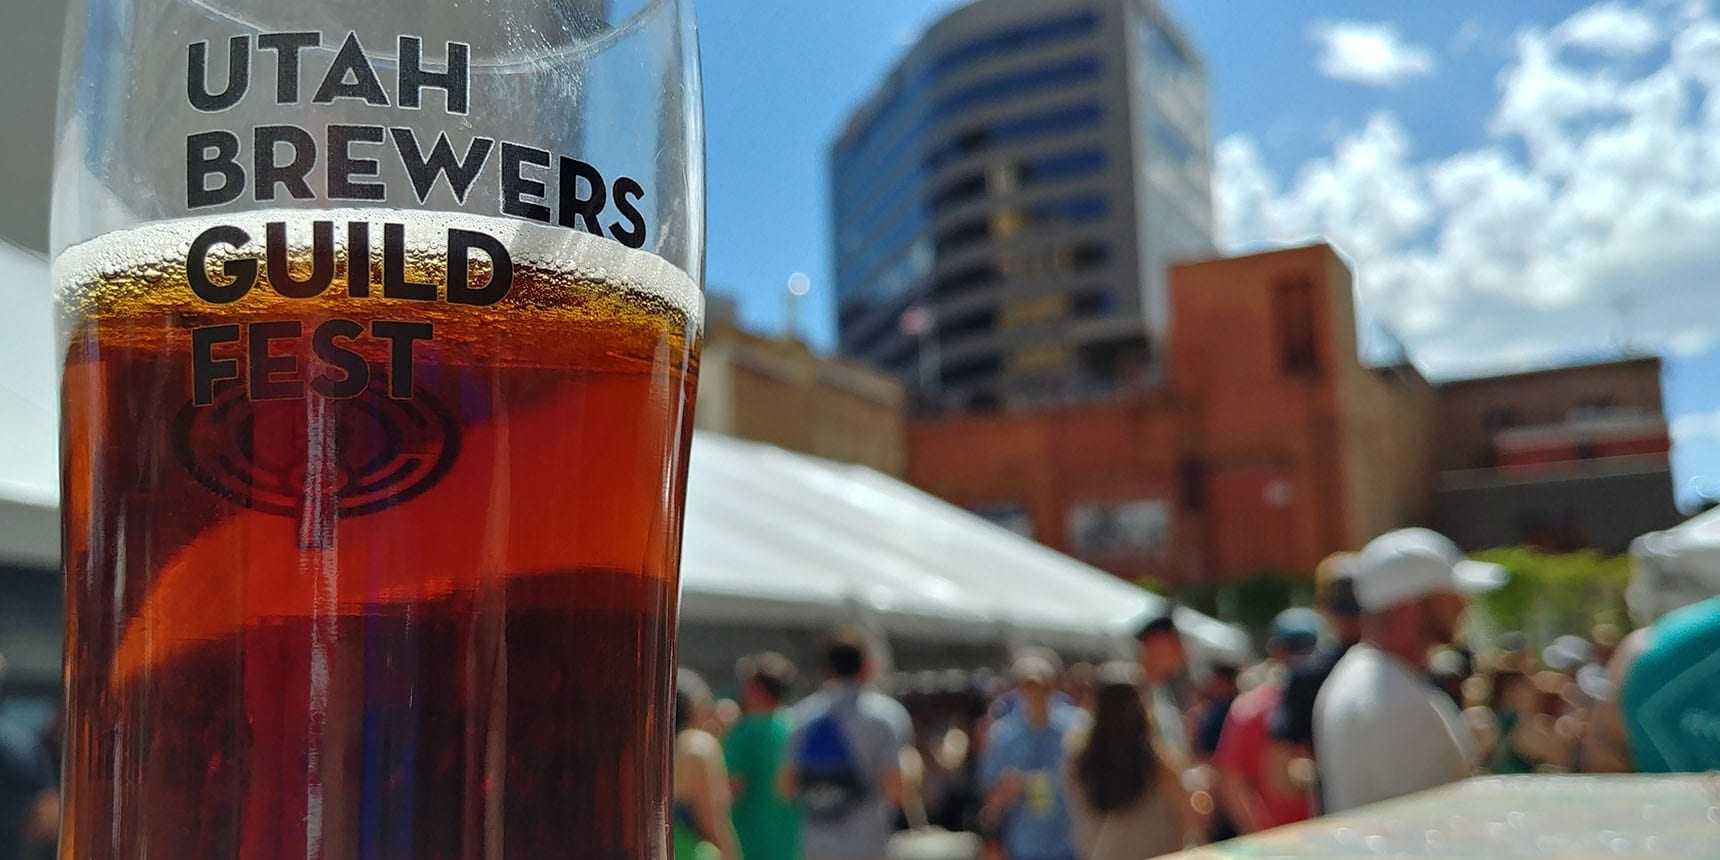 Utah Brewers Guild Fest 2019 - Mike Millen - Utah Beer News